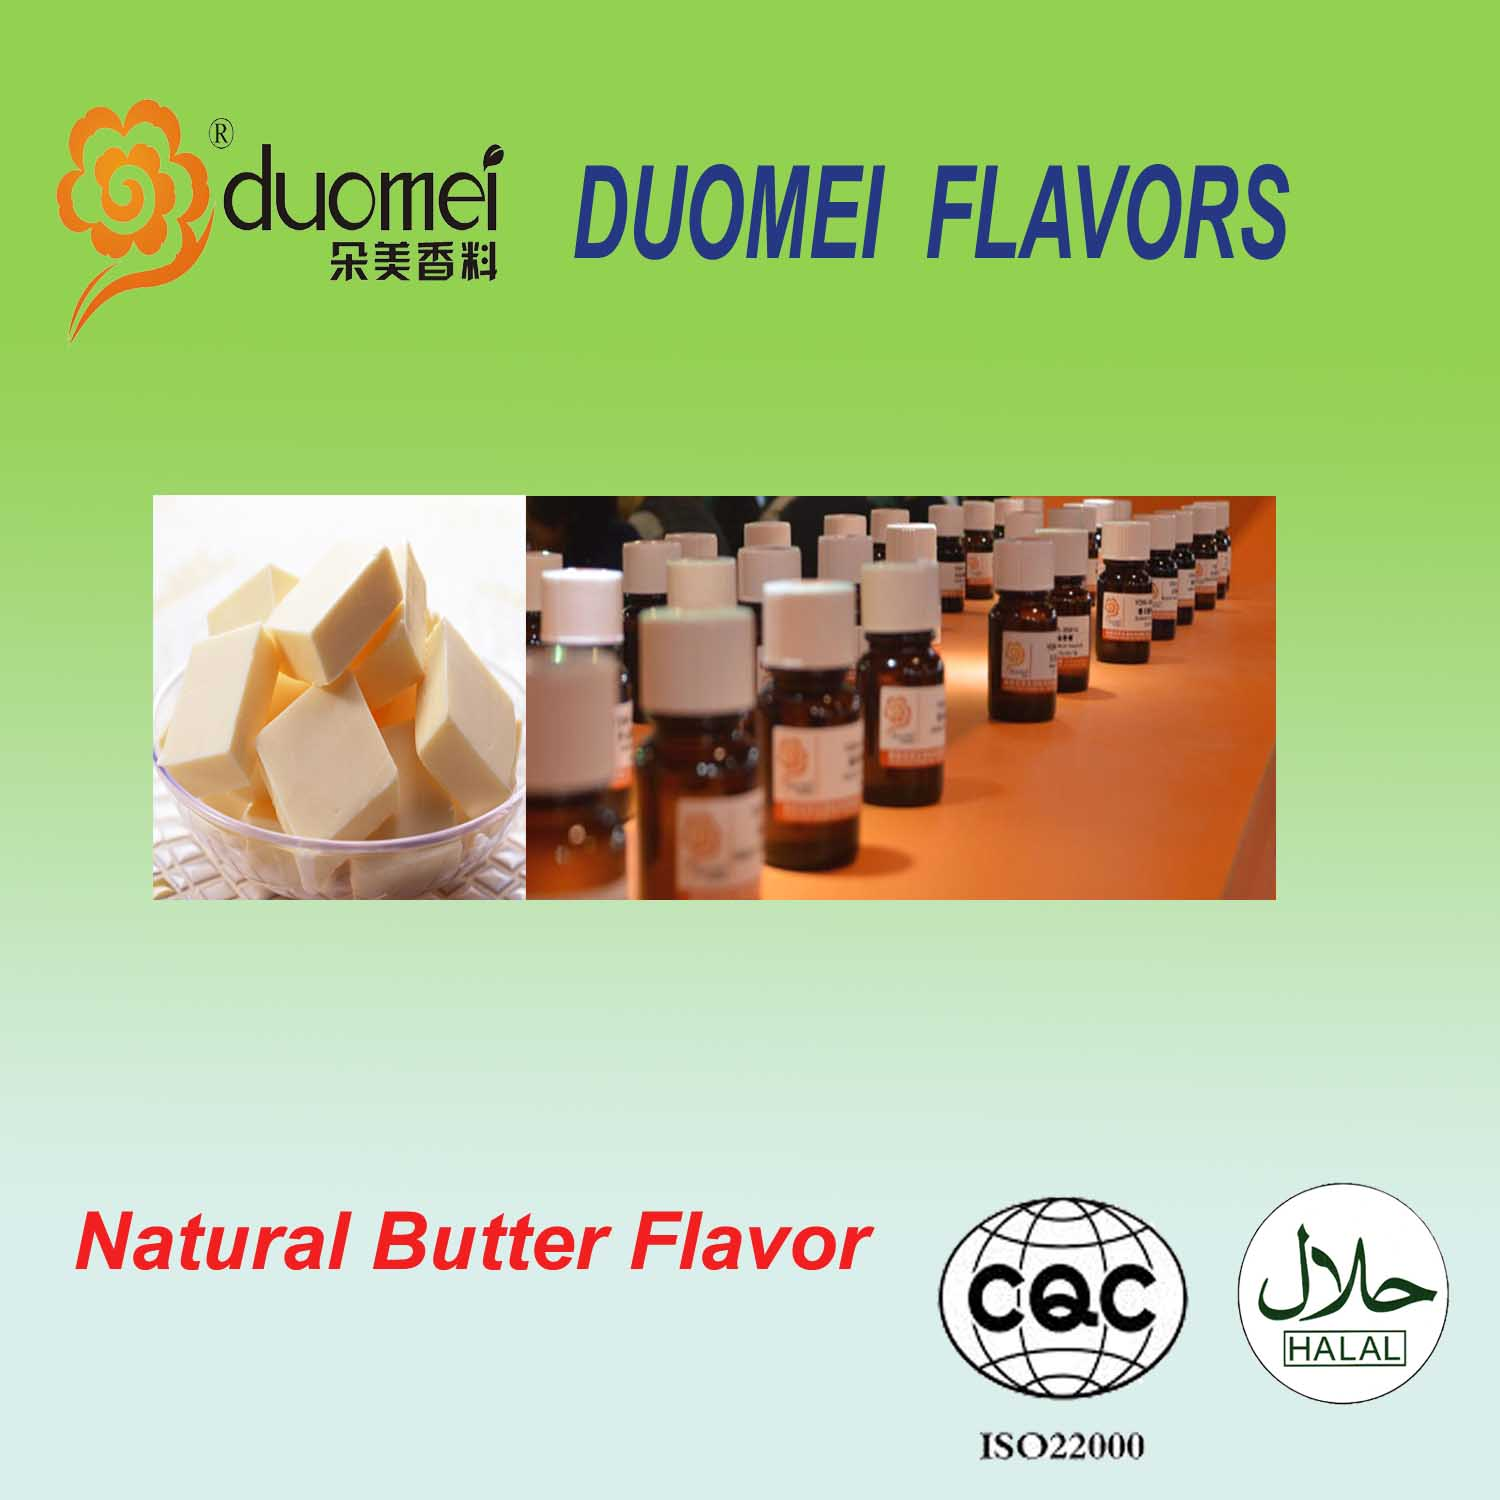 DM-31197 natural butter flavor butter flavored cheese